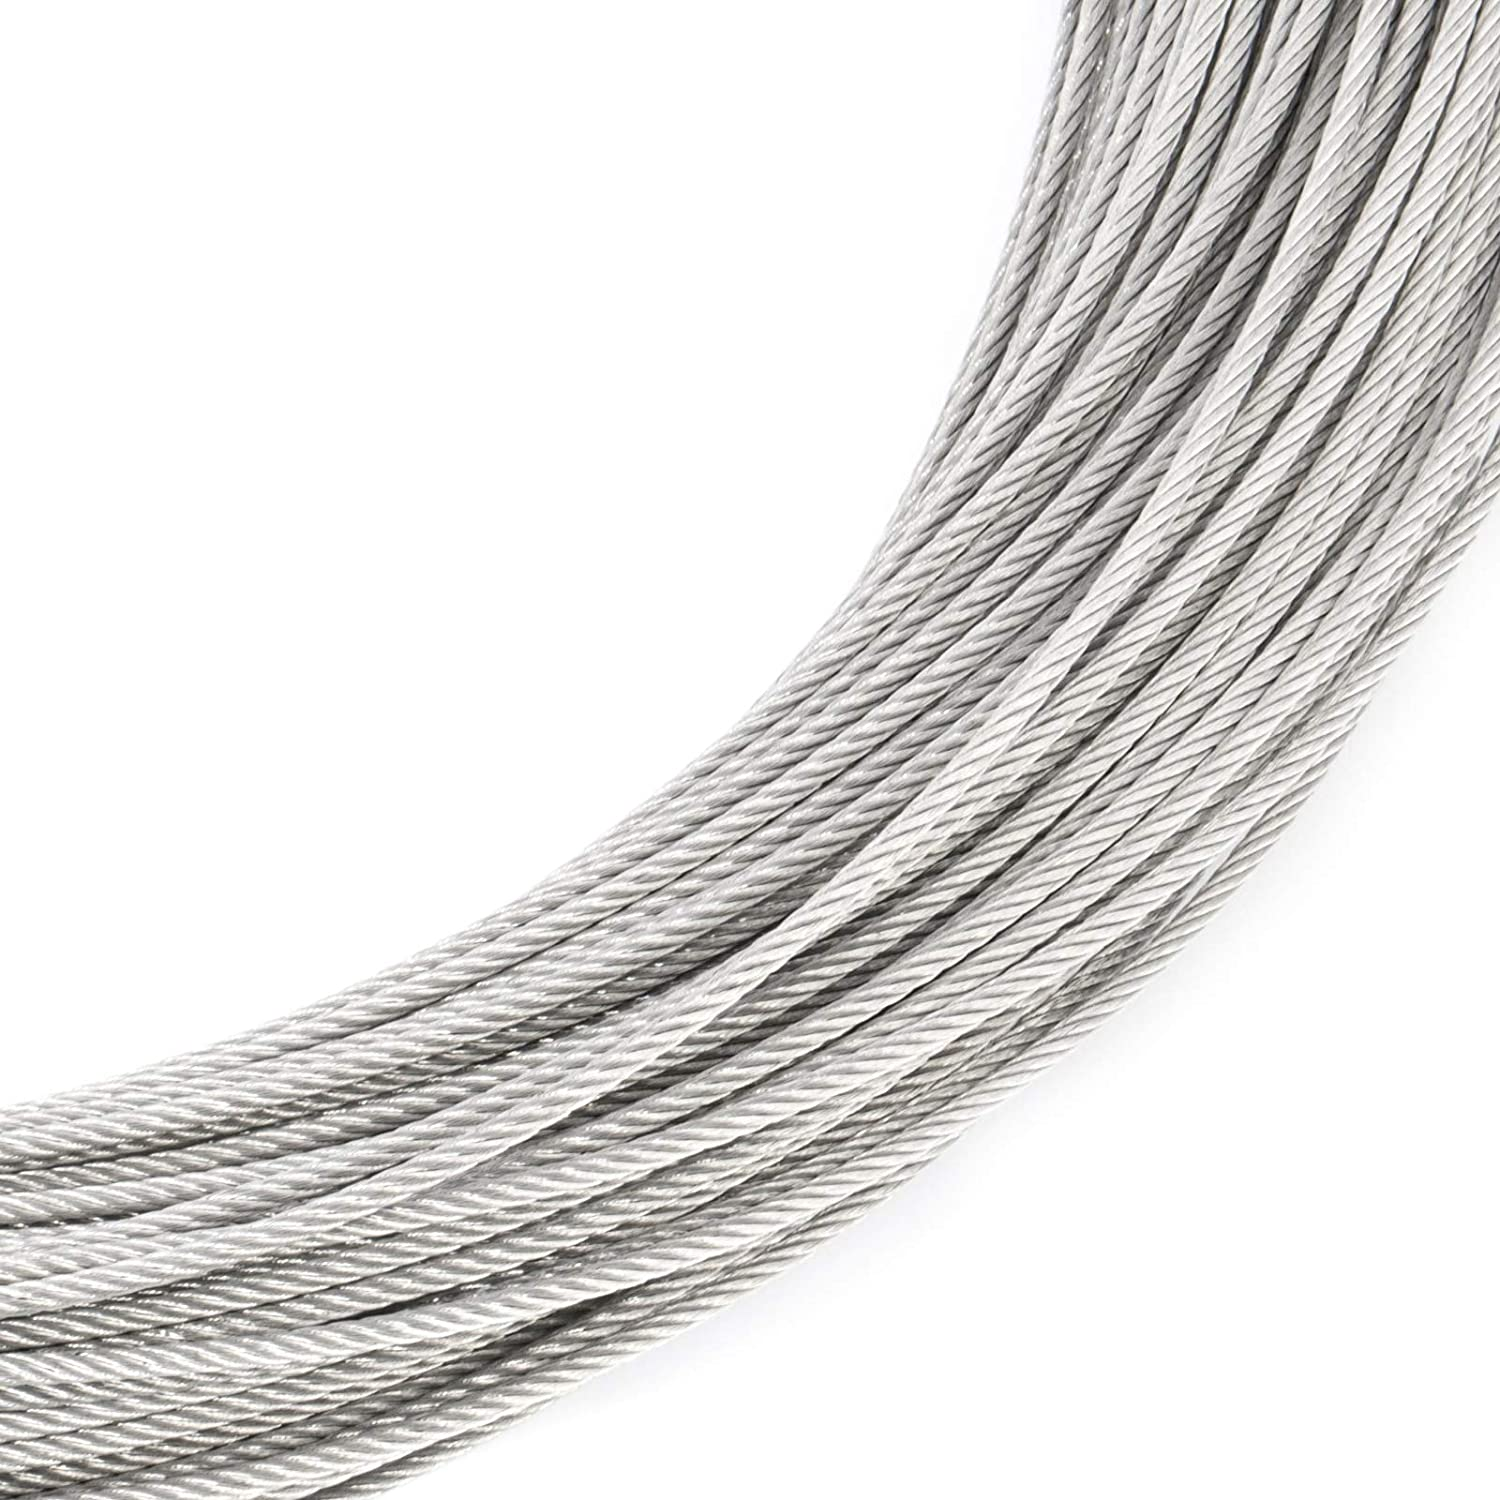 High-Quality Galvanised Steel Wire Rope Metal Cable Length: 1m, Thickness: 1.5mm